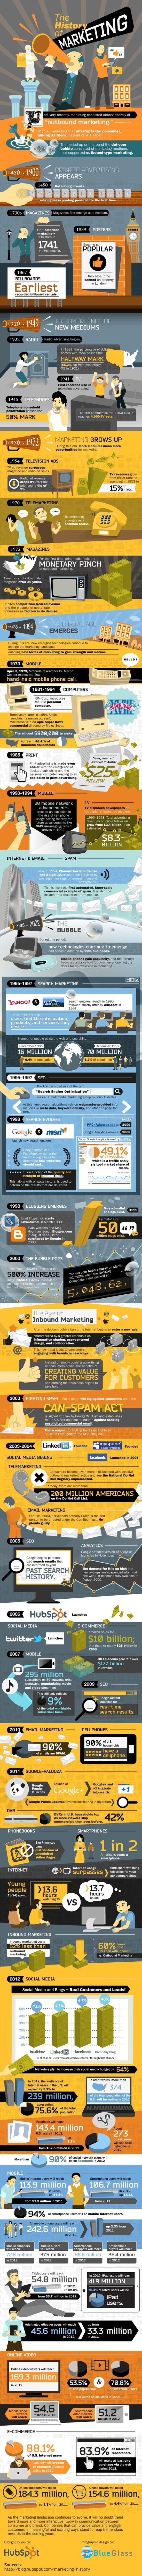 The History of Marketing I don't usually pin this type of stuff, but this one is very interesting.